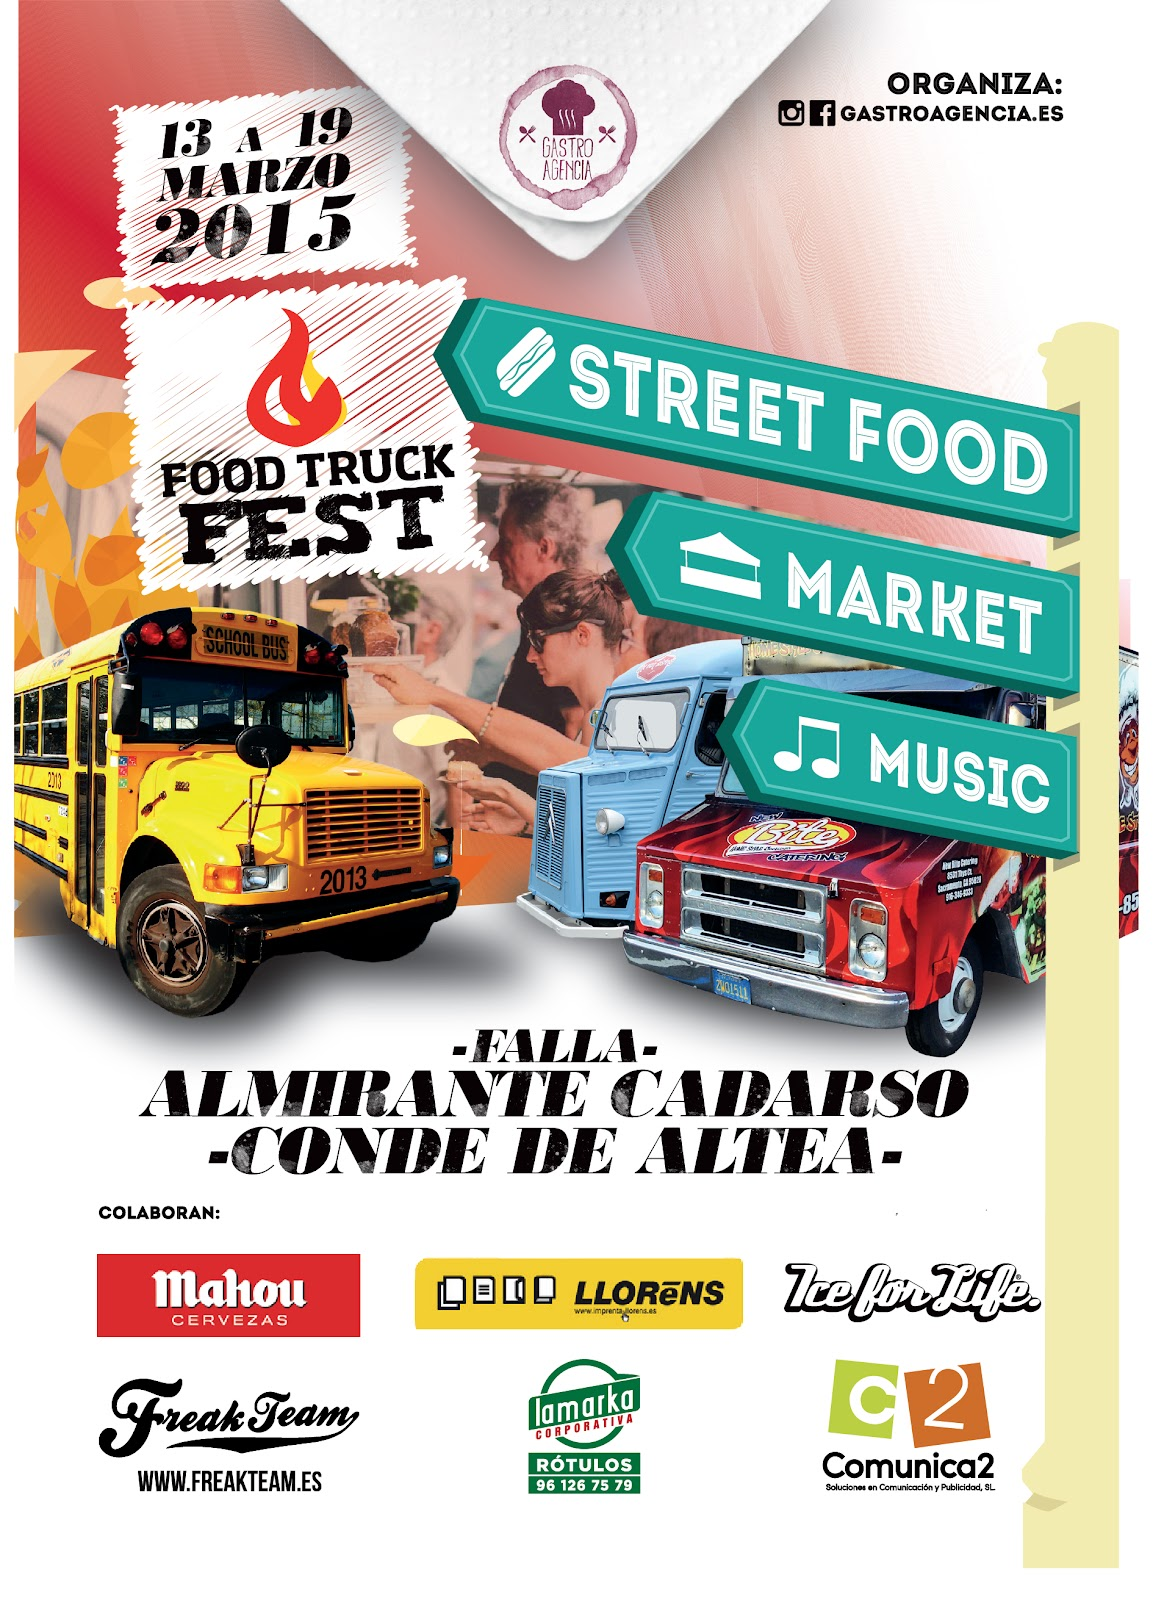 C:\Users\Gonzalo\AppData\Local\Temp\flyer FOOD TRUCK FEST-01.jpg